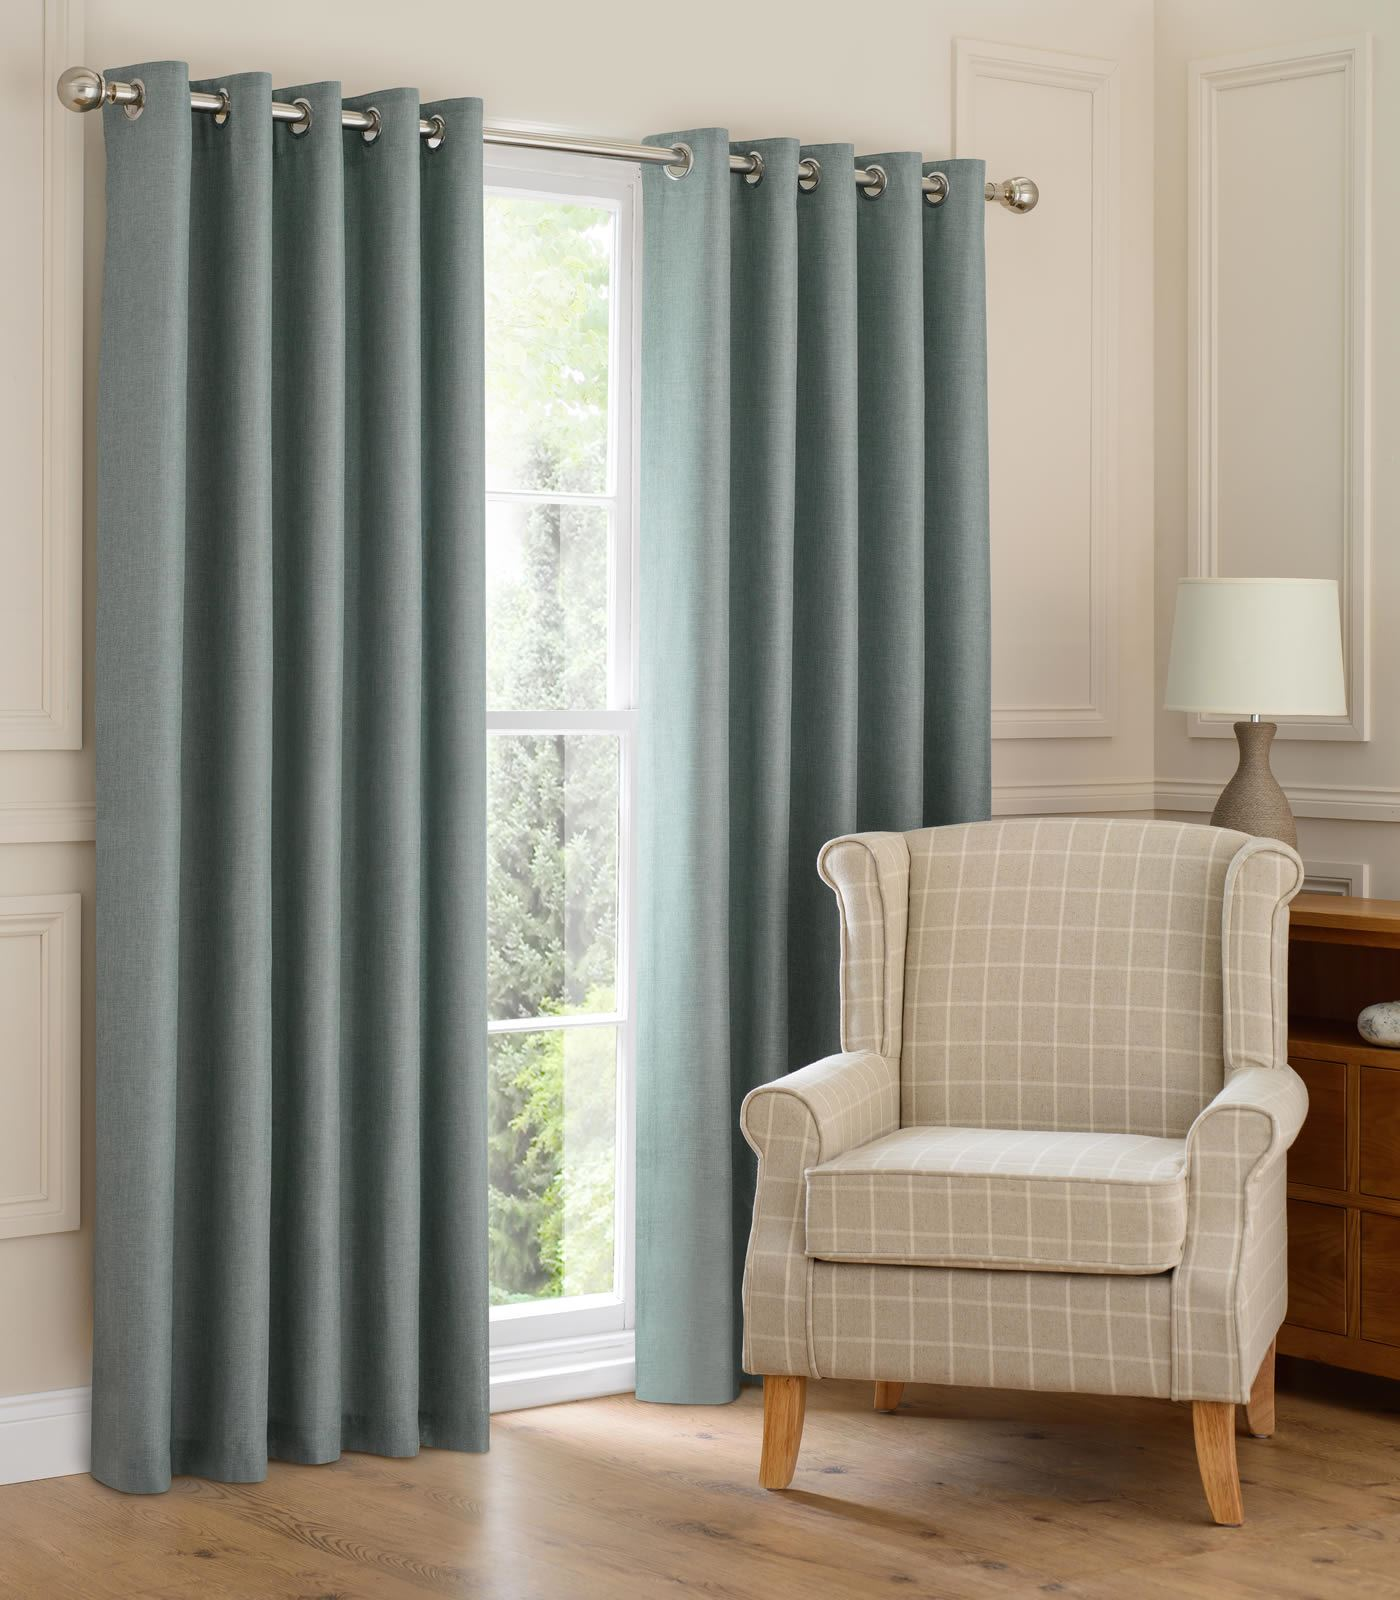 MONTANA LINED EYELET CURTAINS READY MADE RING TOP